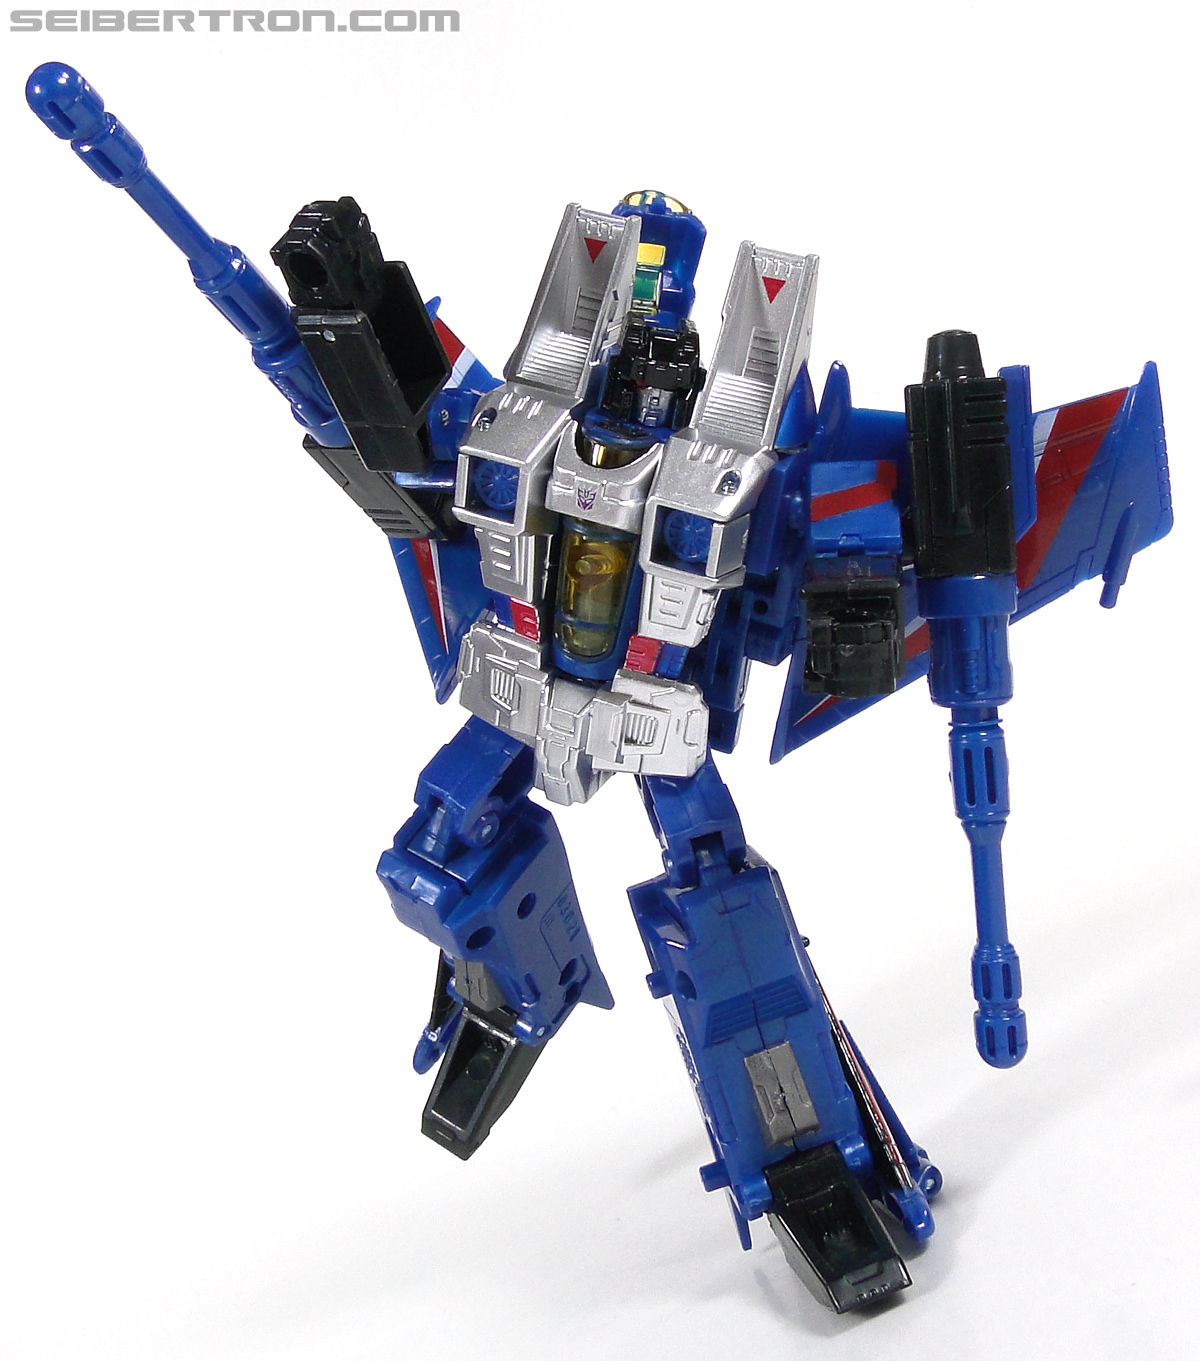 Transformers Generations Thundercracker (Image #126 of 219)